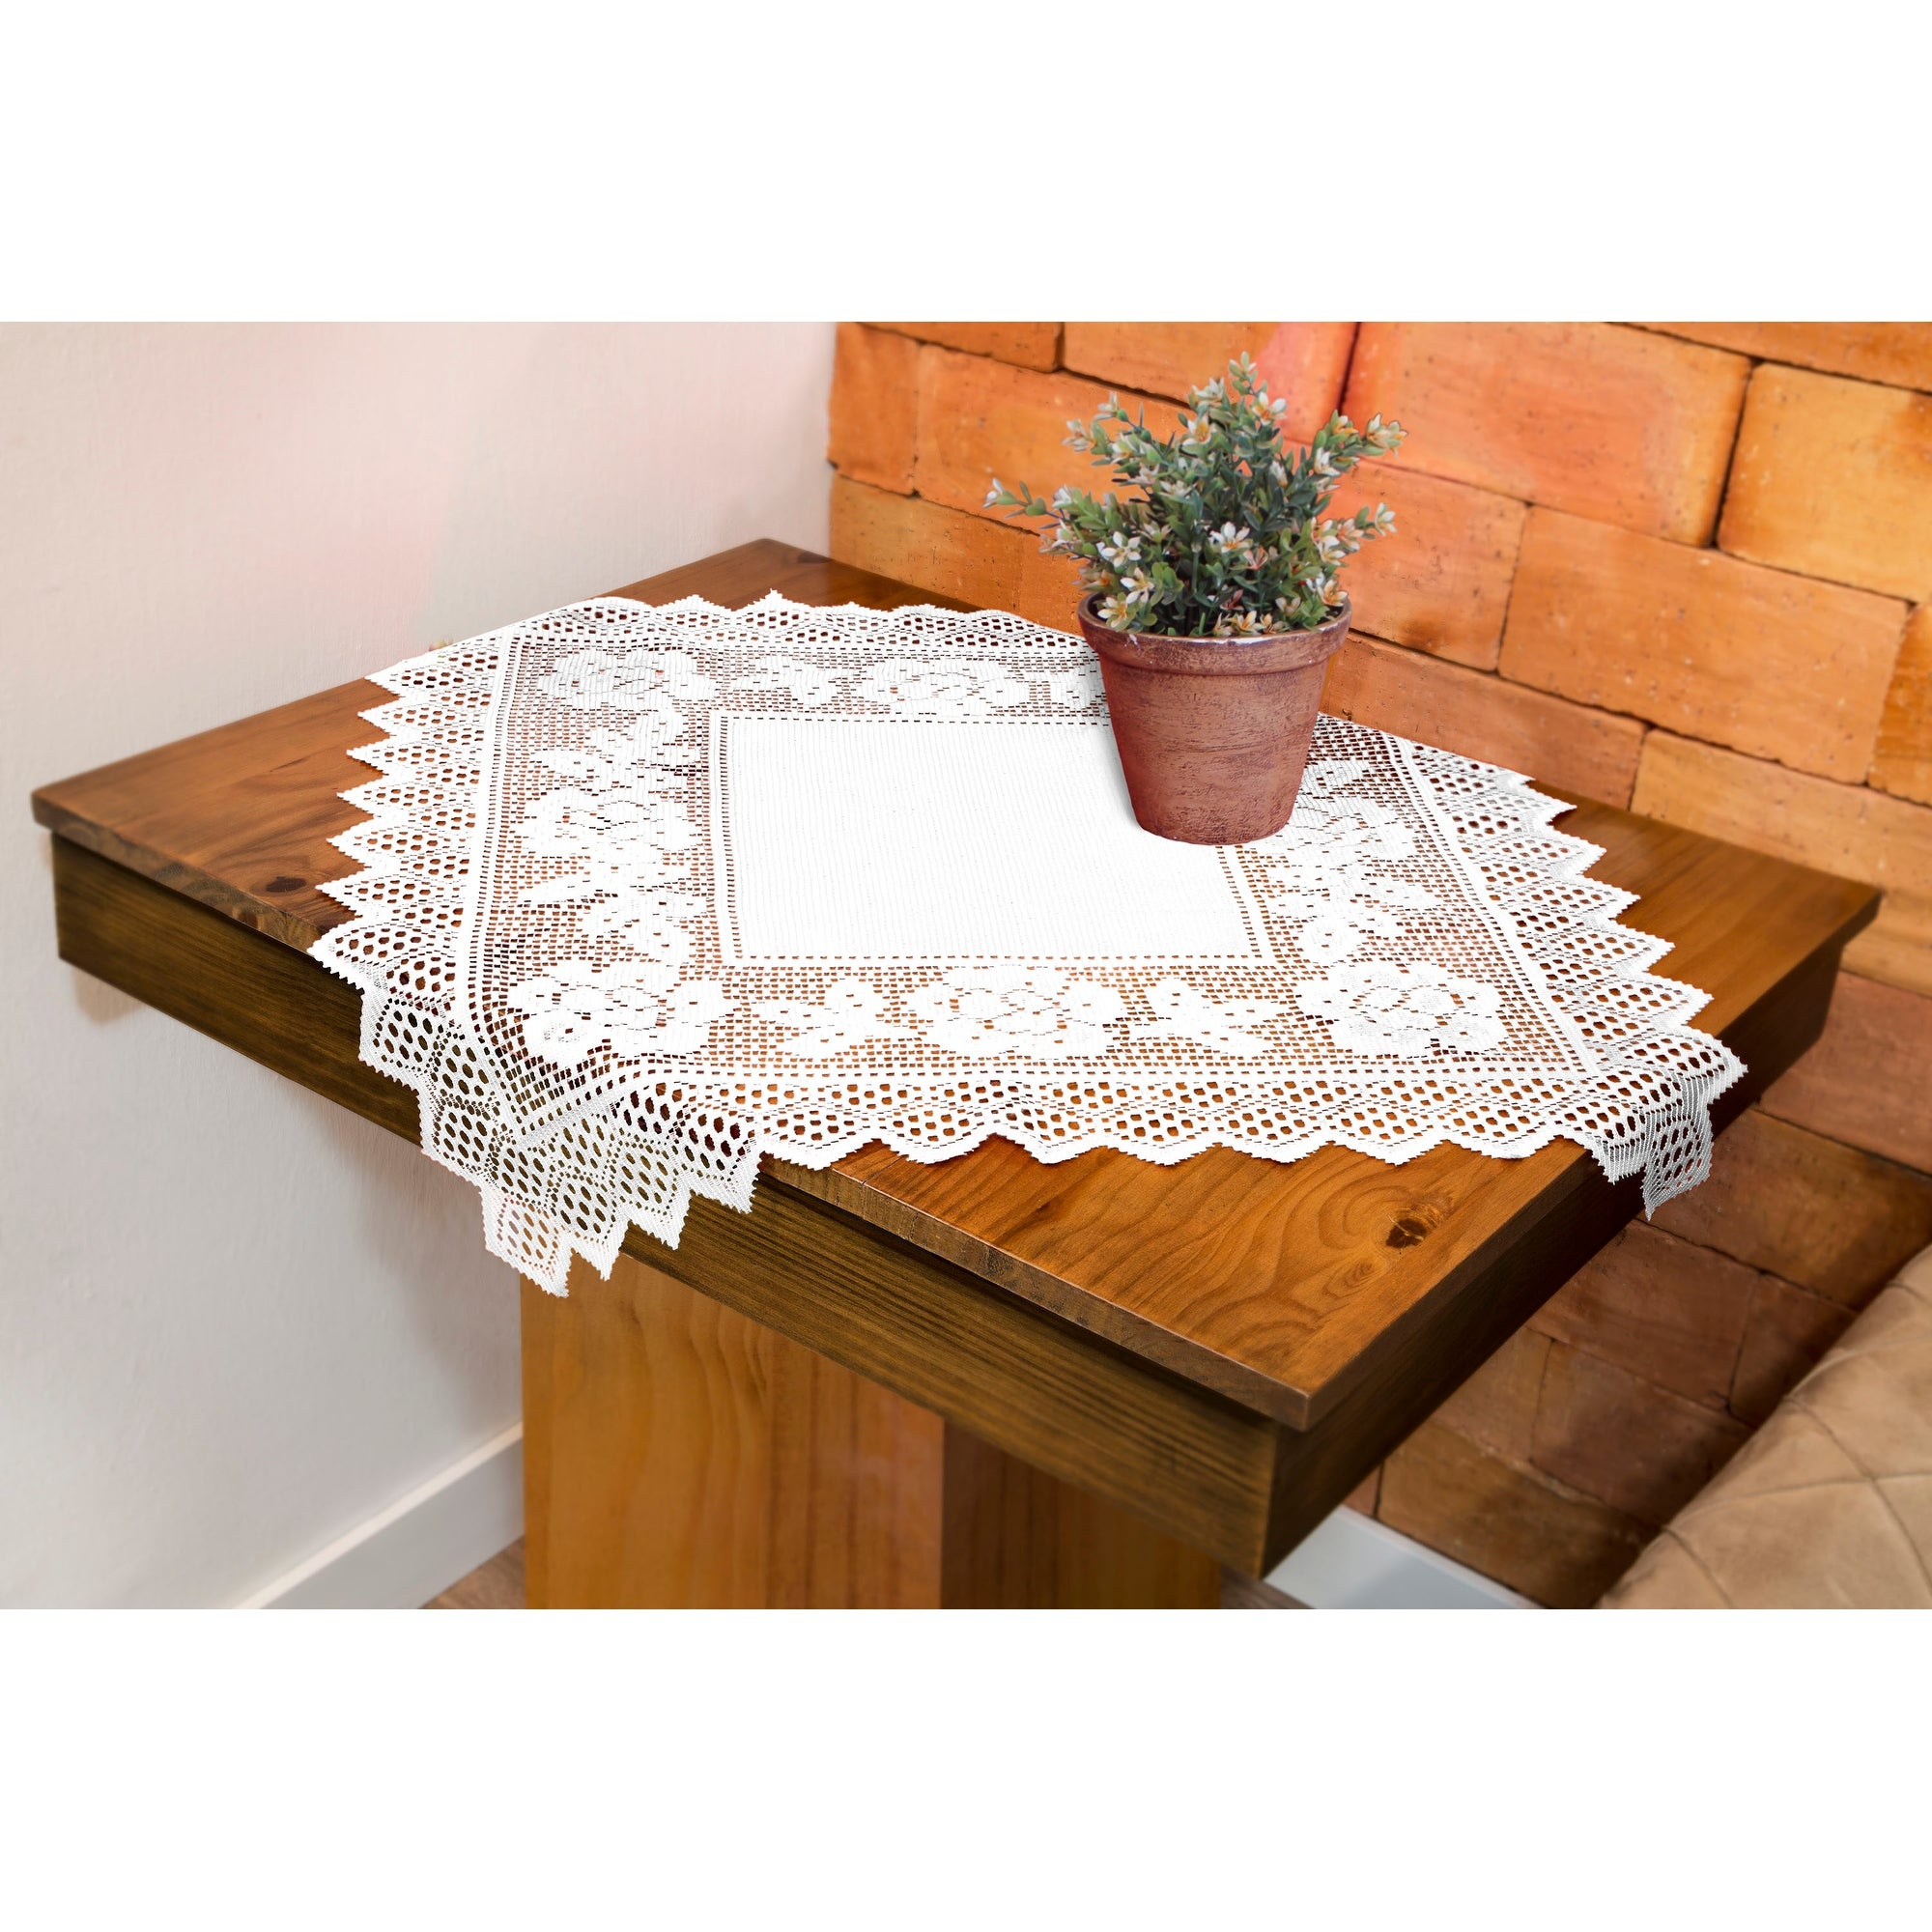 Table Topper Grega Design Brazilian Lace 29x29 Inches White Color 100 Percent Polyester - Thumbnail 0